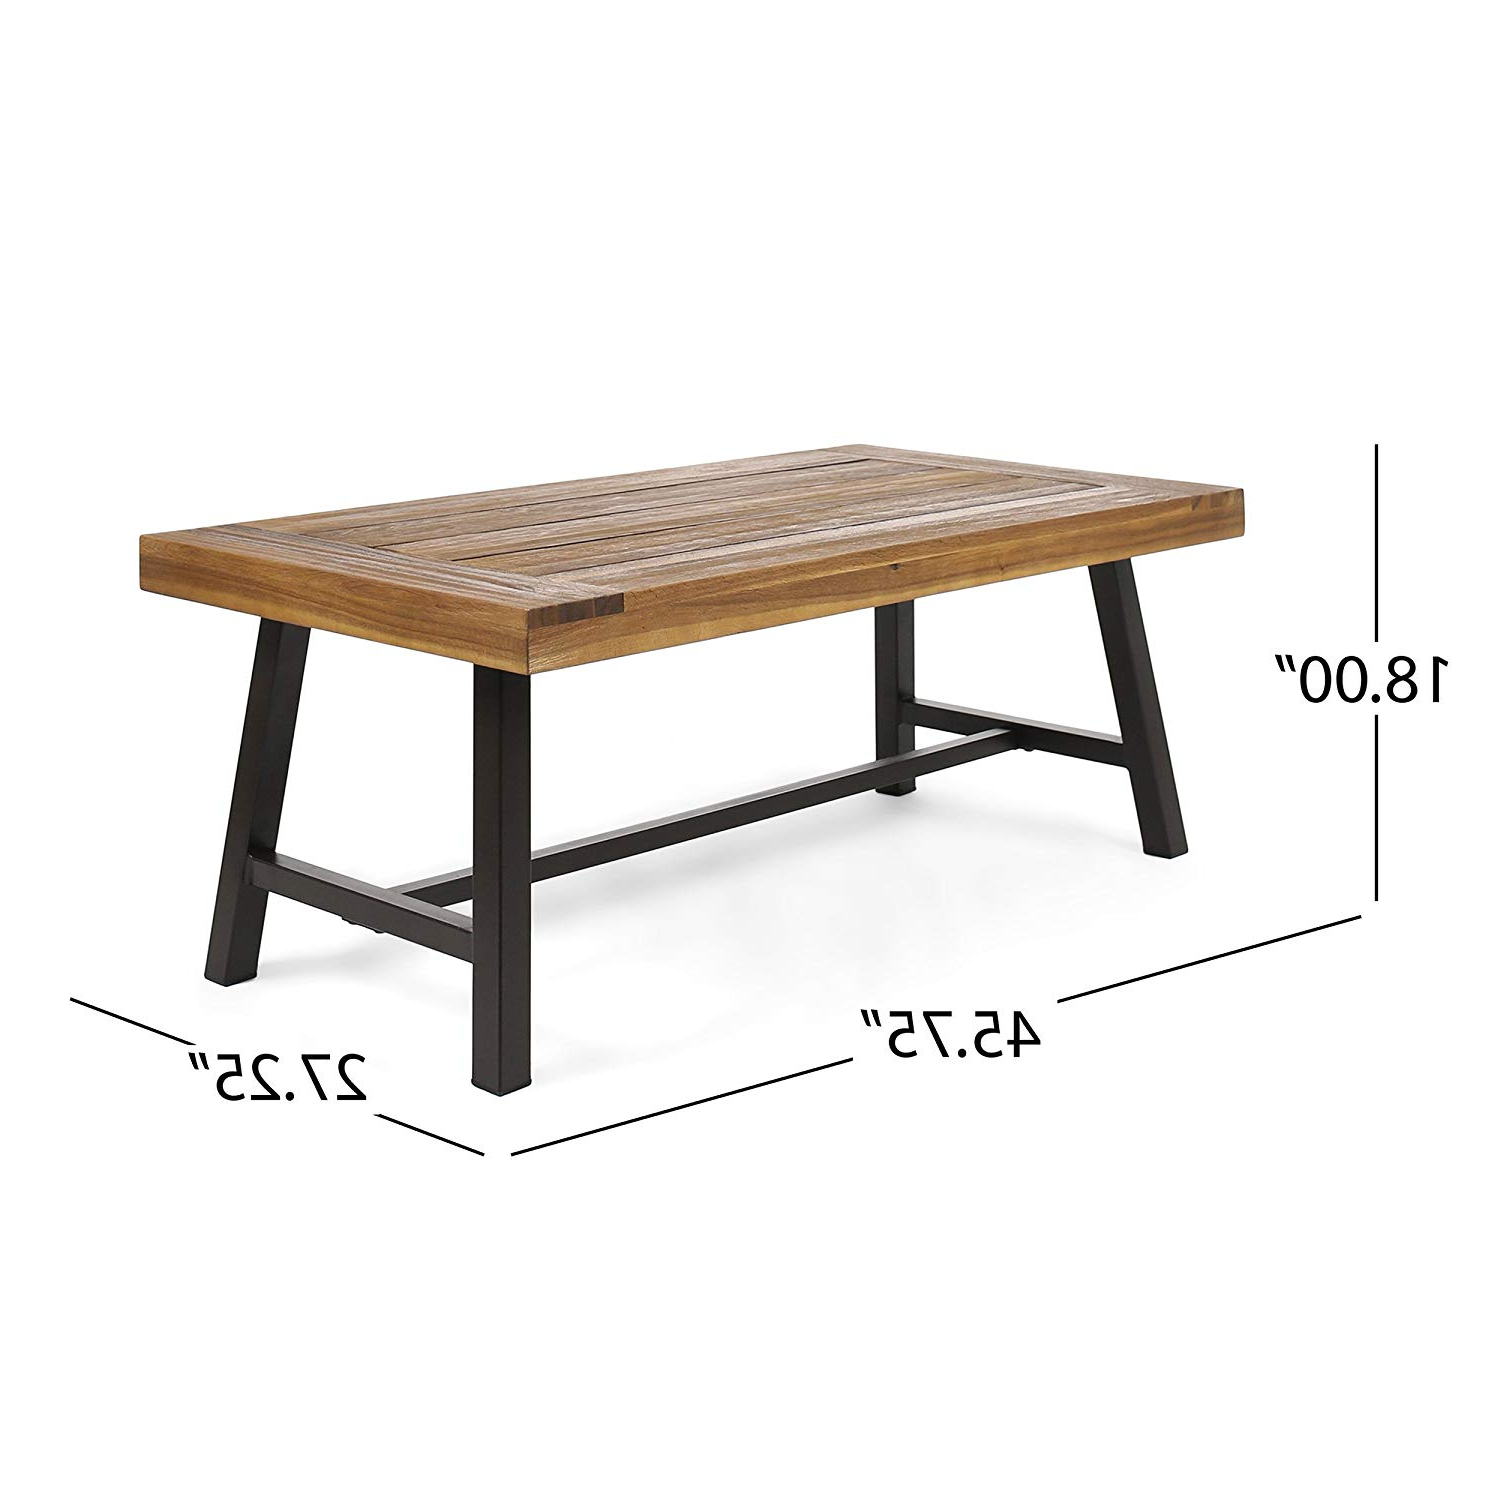 Christopher Knight Home 304571 Carlisle Outdoor Acacia Wood Coffee Table, Sandblast Finish/rustic Metal Within Well Known Acacia Wood Top Dining Tables With Iron Legs On Raw Metal (View 10 of 30)